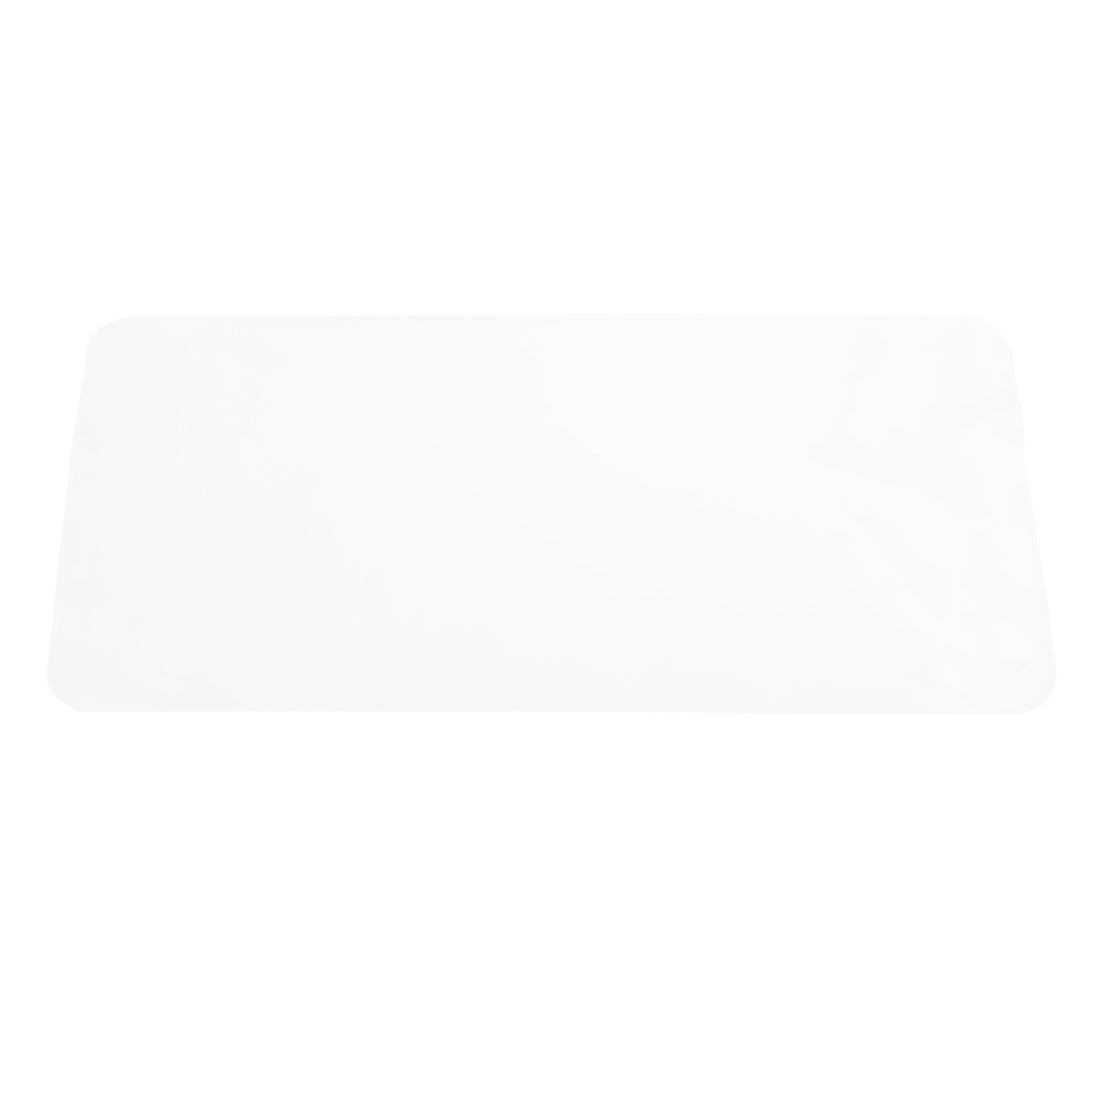 "14.4"" x 5.6"" Clear Silicone Keyboard Protective Film Cover for Apple Macbook Pro"